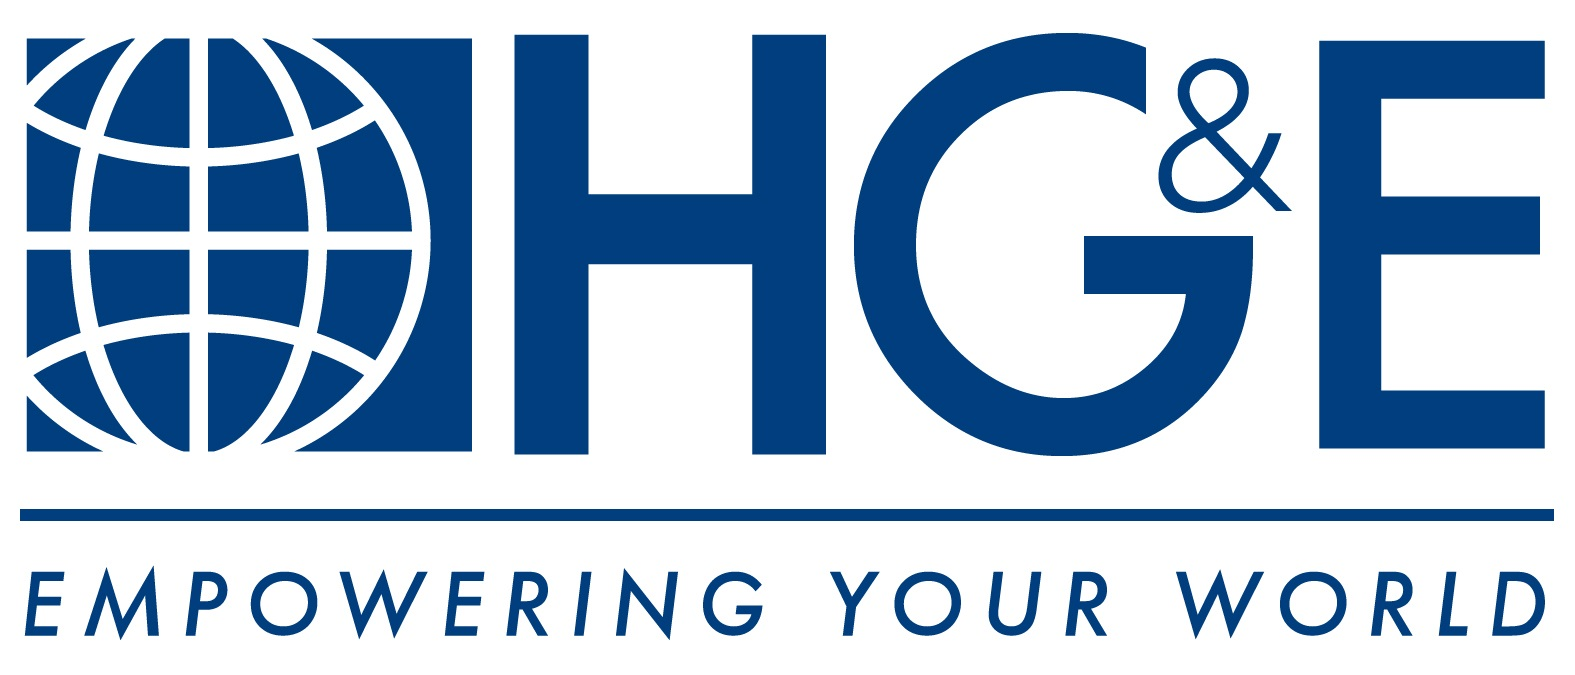 Logo-hge-2017-USE-THIS-LOGO.jpg